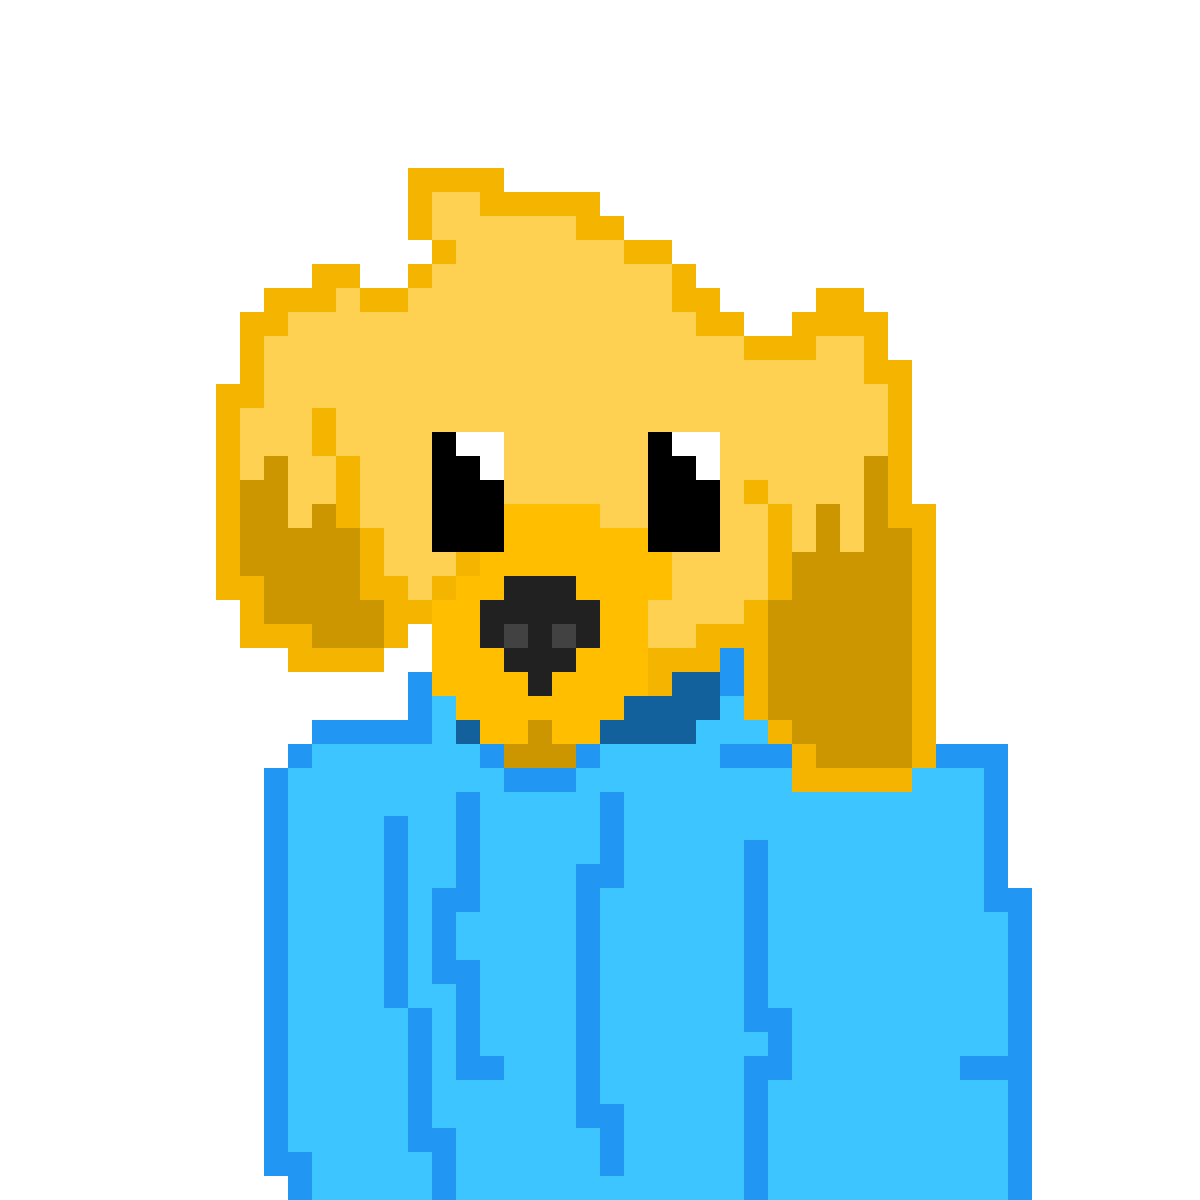 Golden Retriever in a Jacket